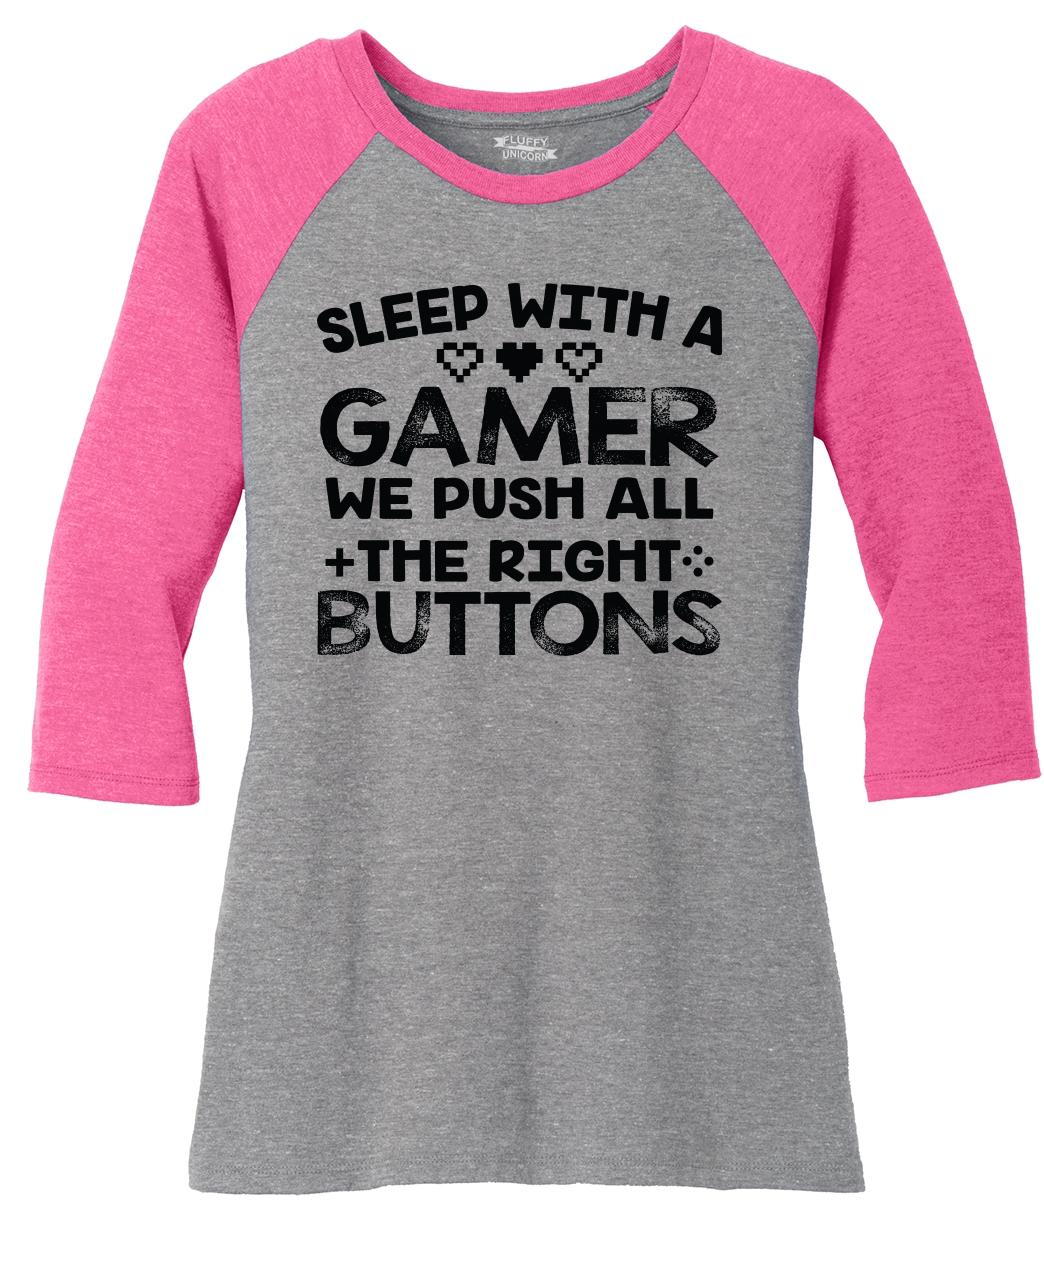 Sleep With Gamer Push Buttons Funny Ladies 3 4 Slv T Shirt Sex